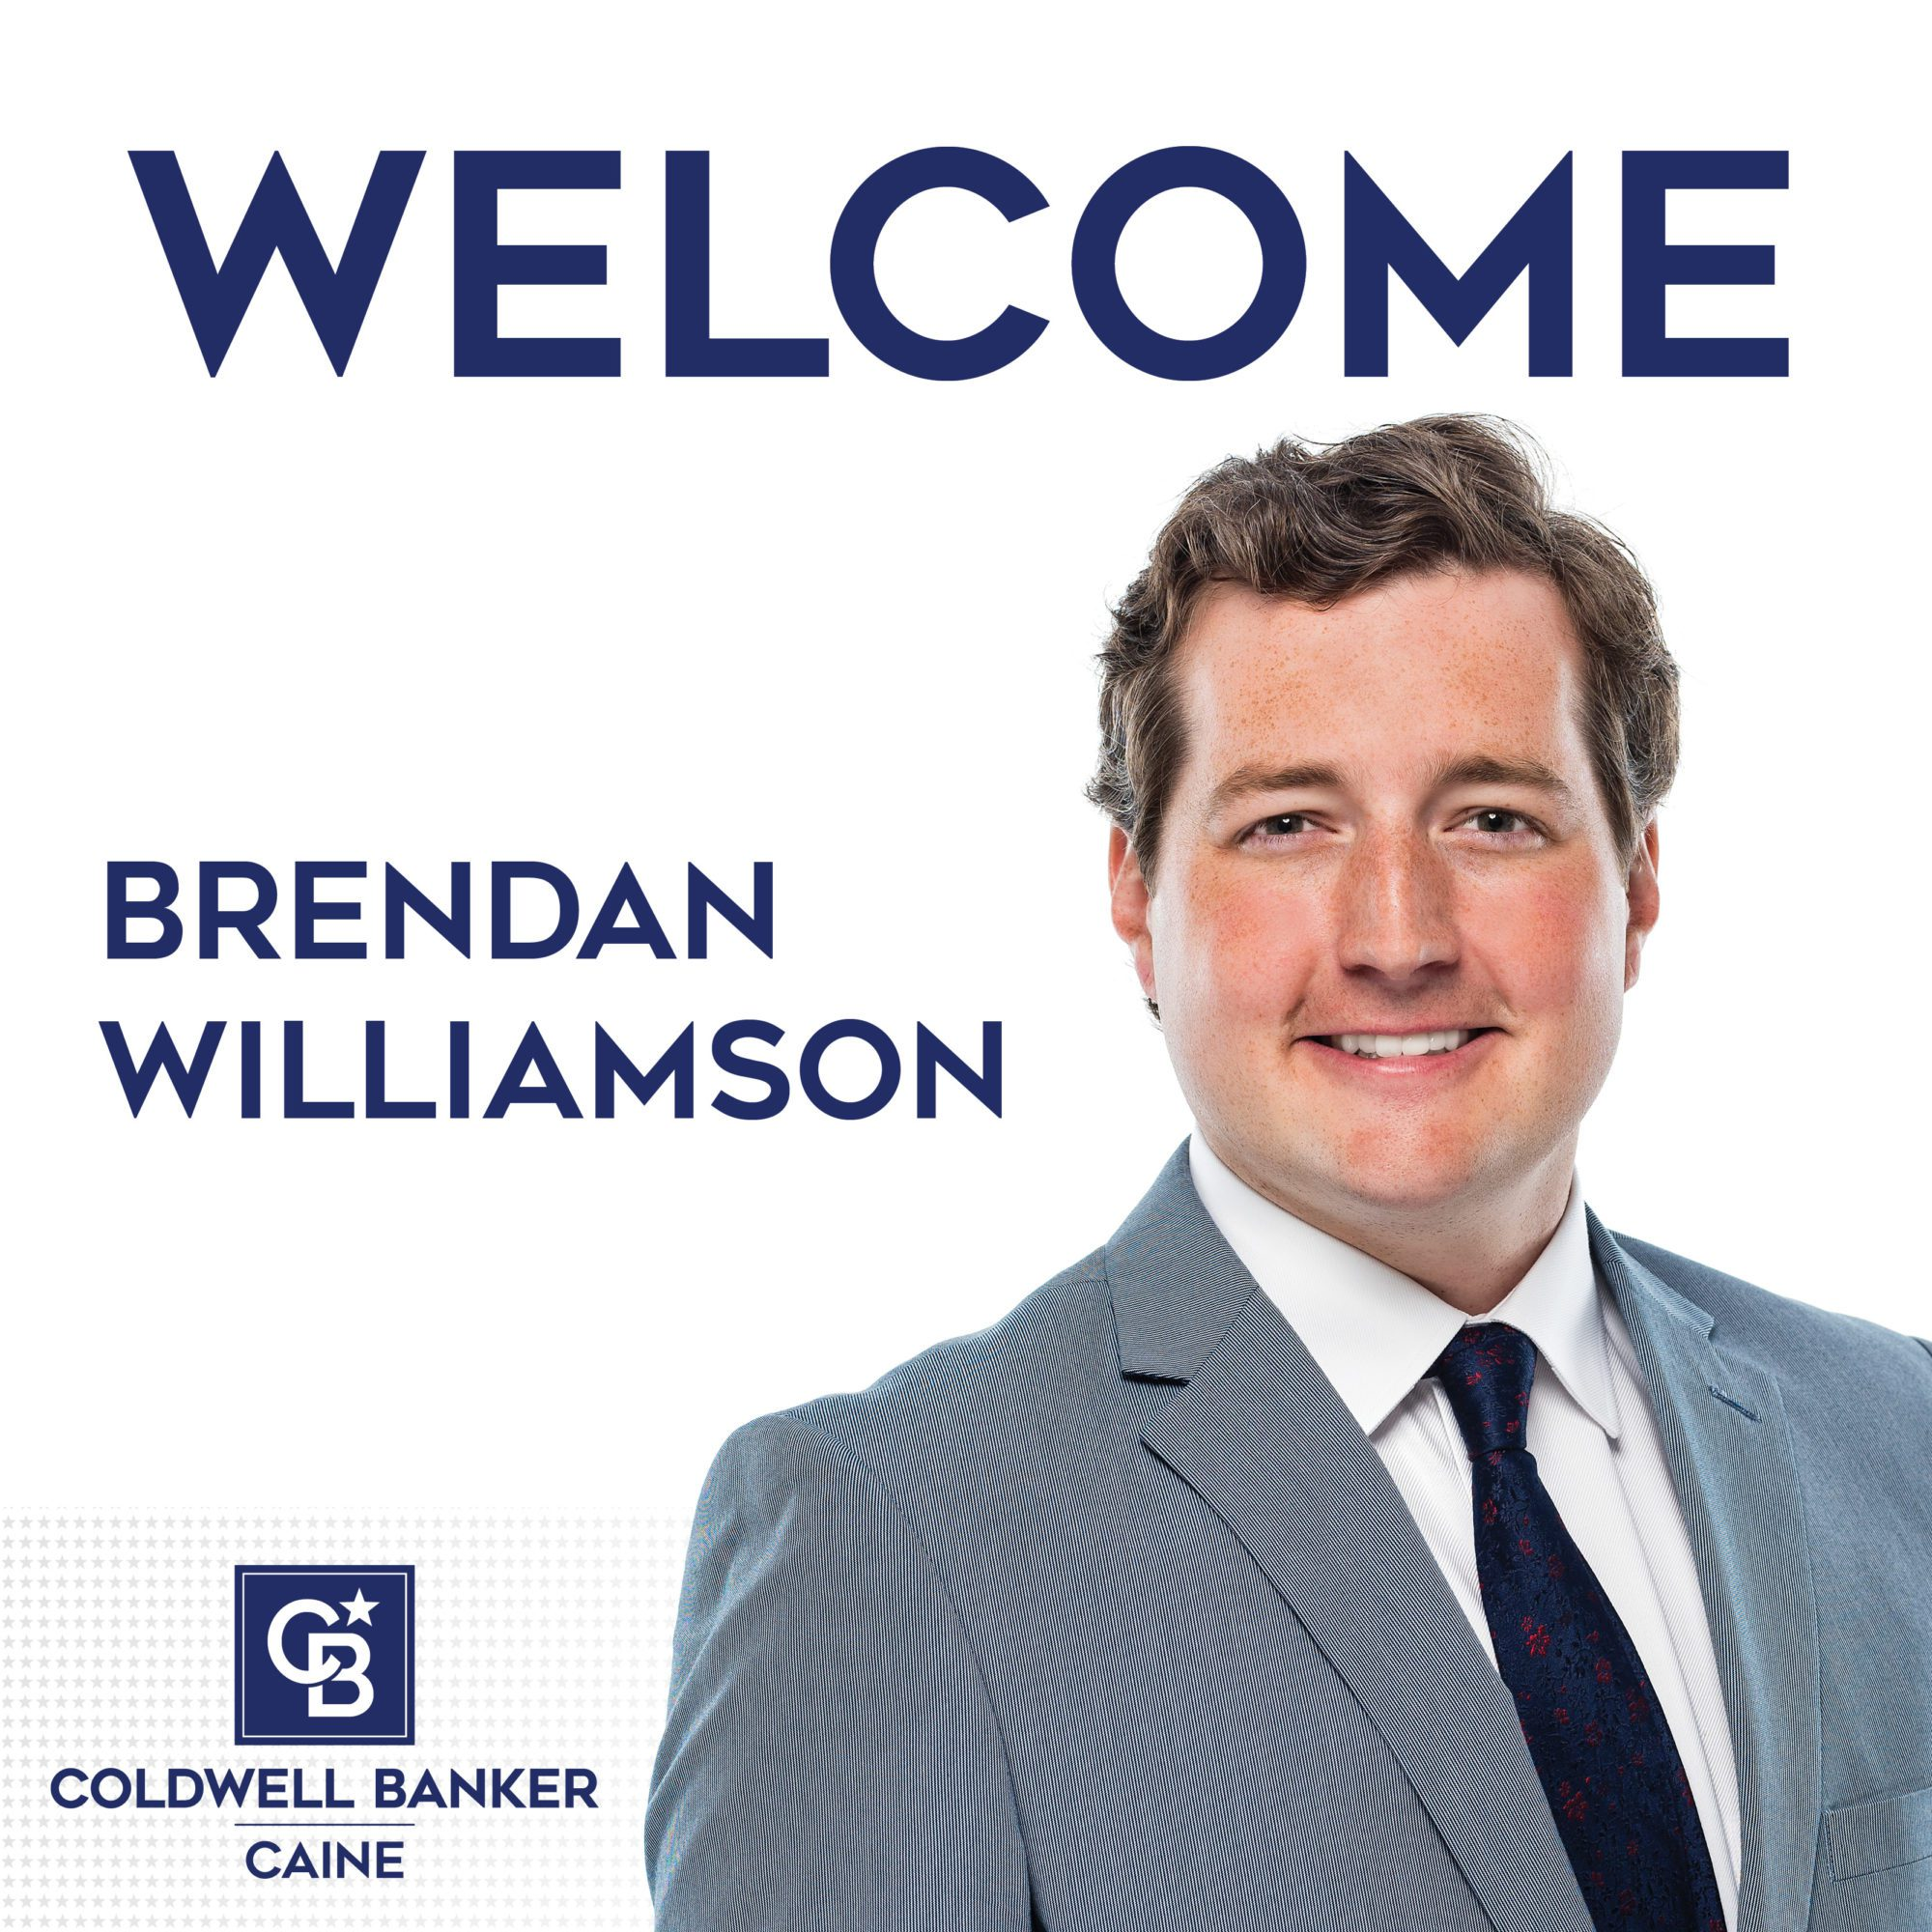 Brendan Williamson